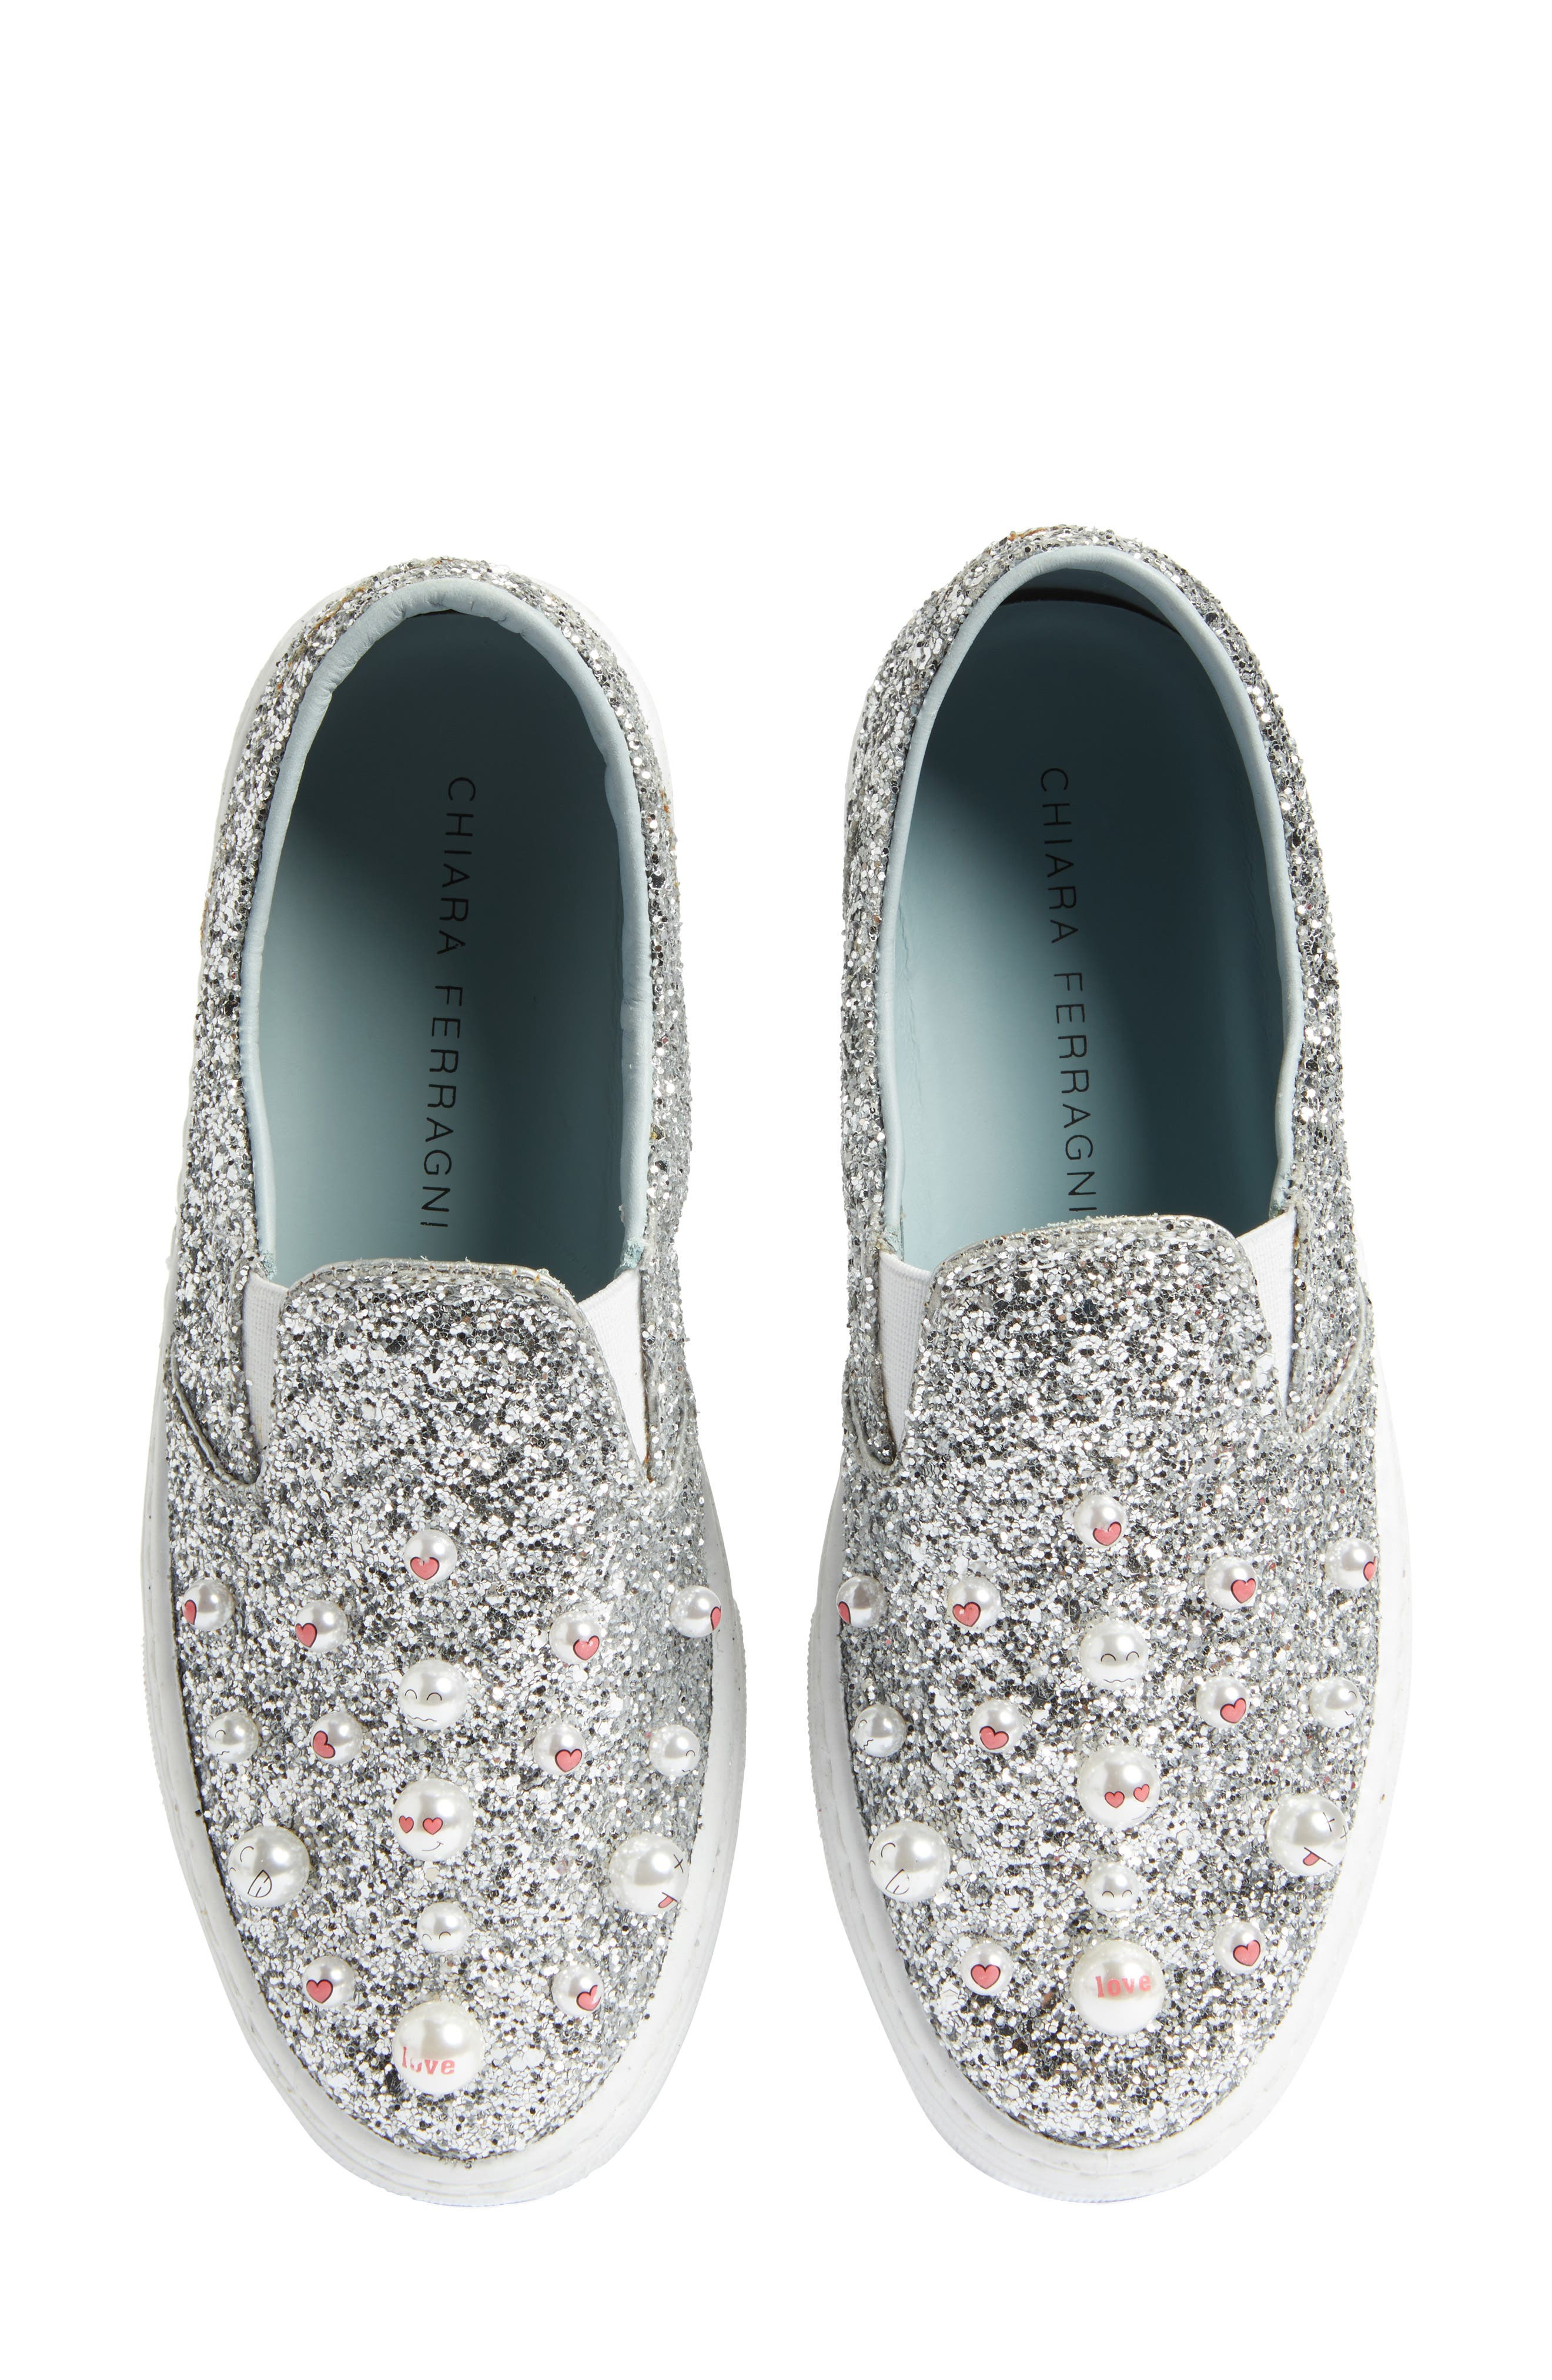 Candies Embellished Slip-On Sneaker,                             Main thumbnail 1, color,                             Silver